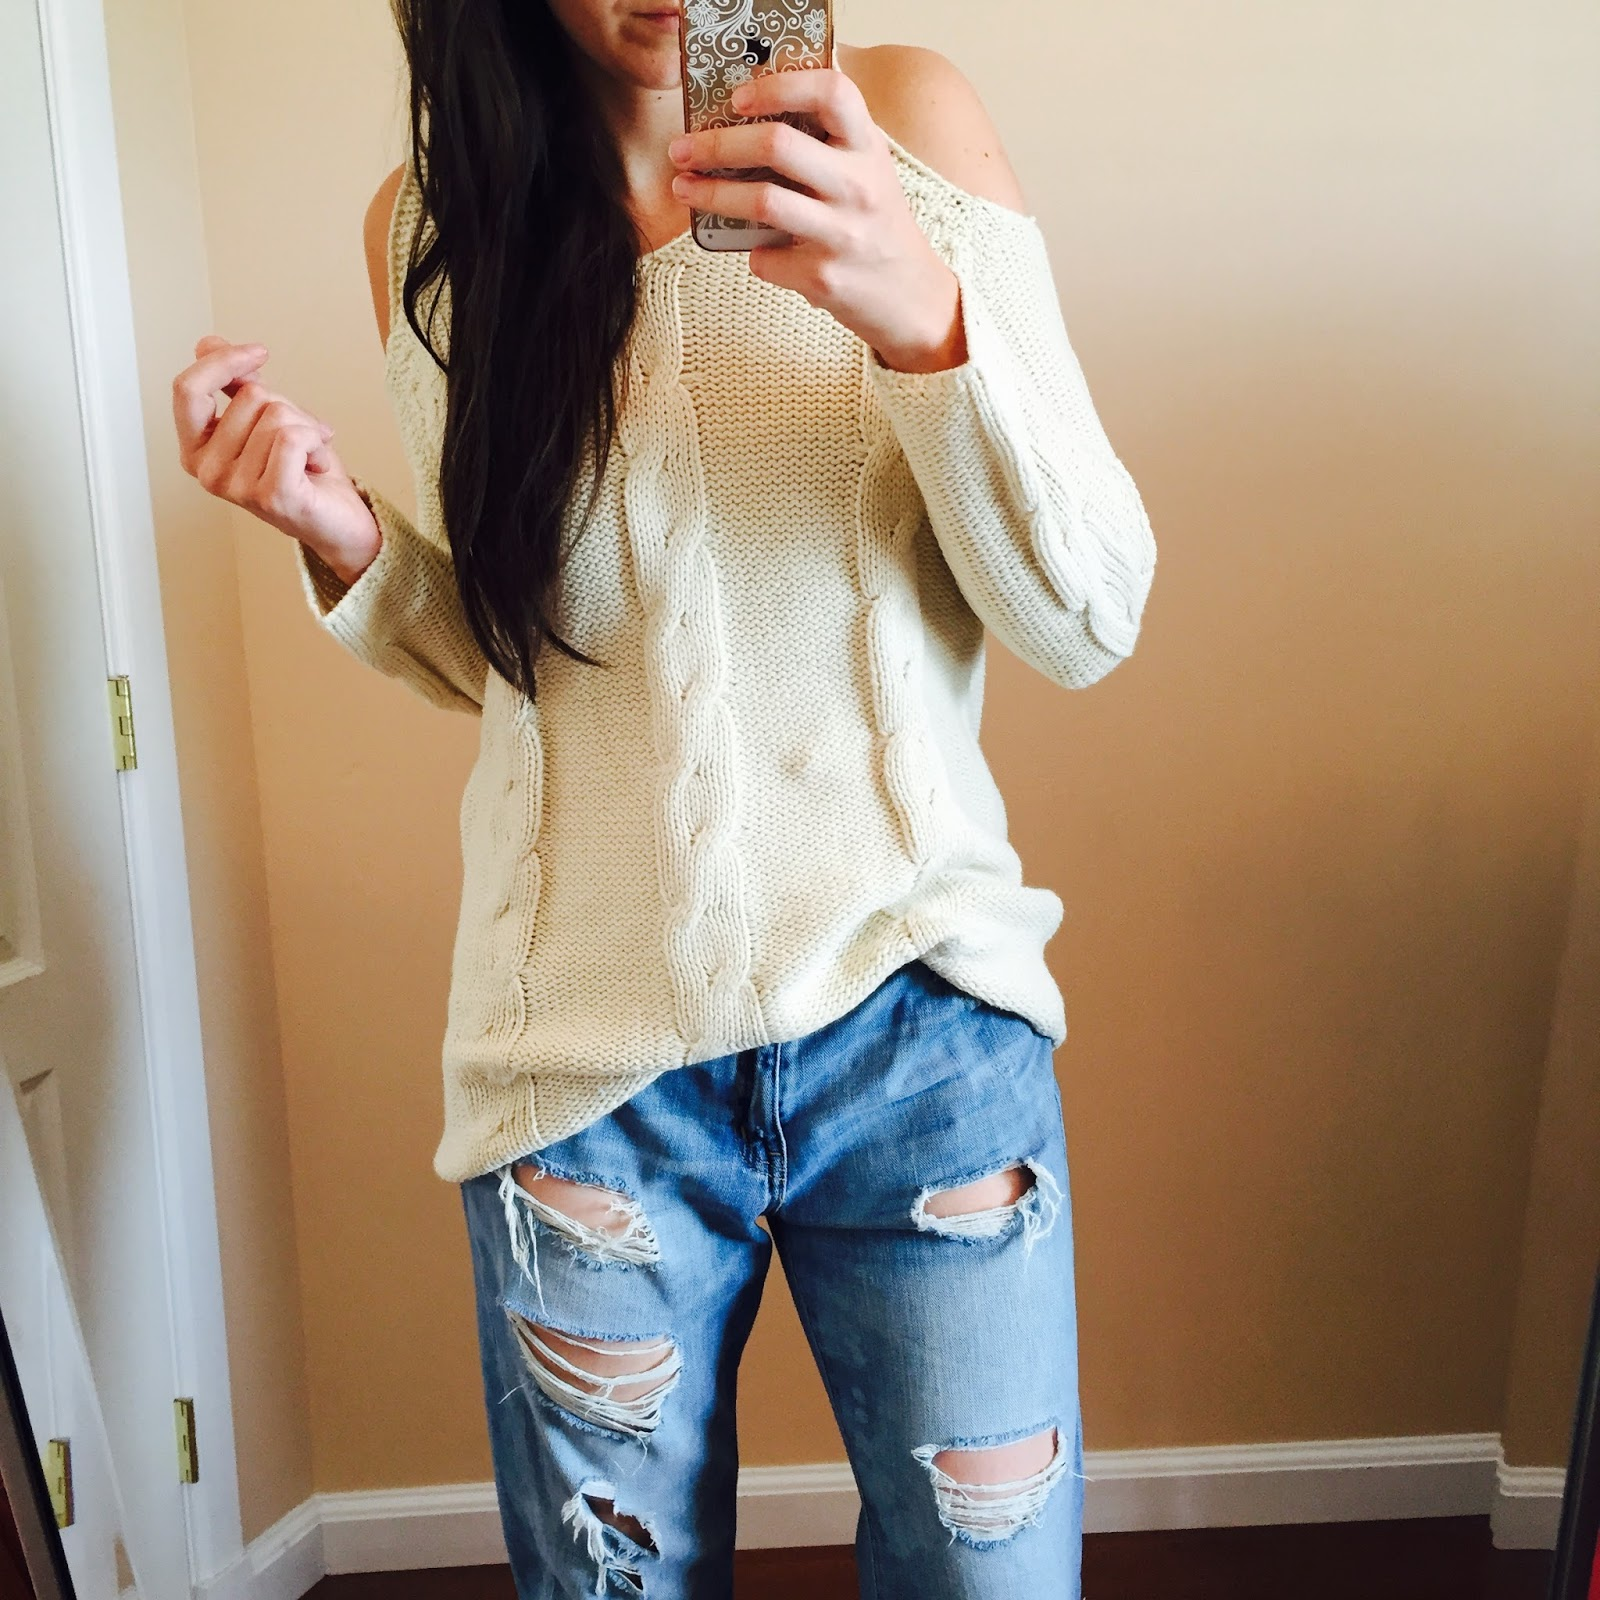 Boyfriend Jeans outfit, boyfriend jeans, Target Boyfriend Jeans, ivory shoulder cut out sweater, lookbook store, how to style a ivory sweater, how to style a sweater, teen fashion, teen fashion outfits, how to style for teenagers, teen outfits,